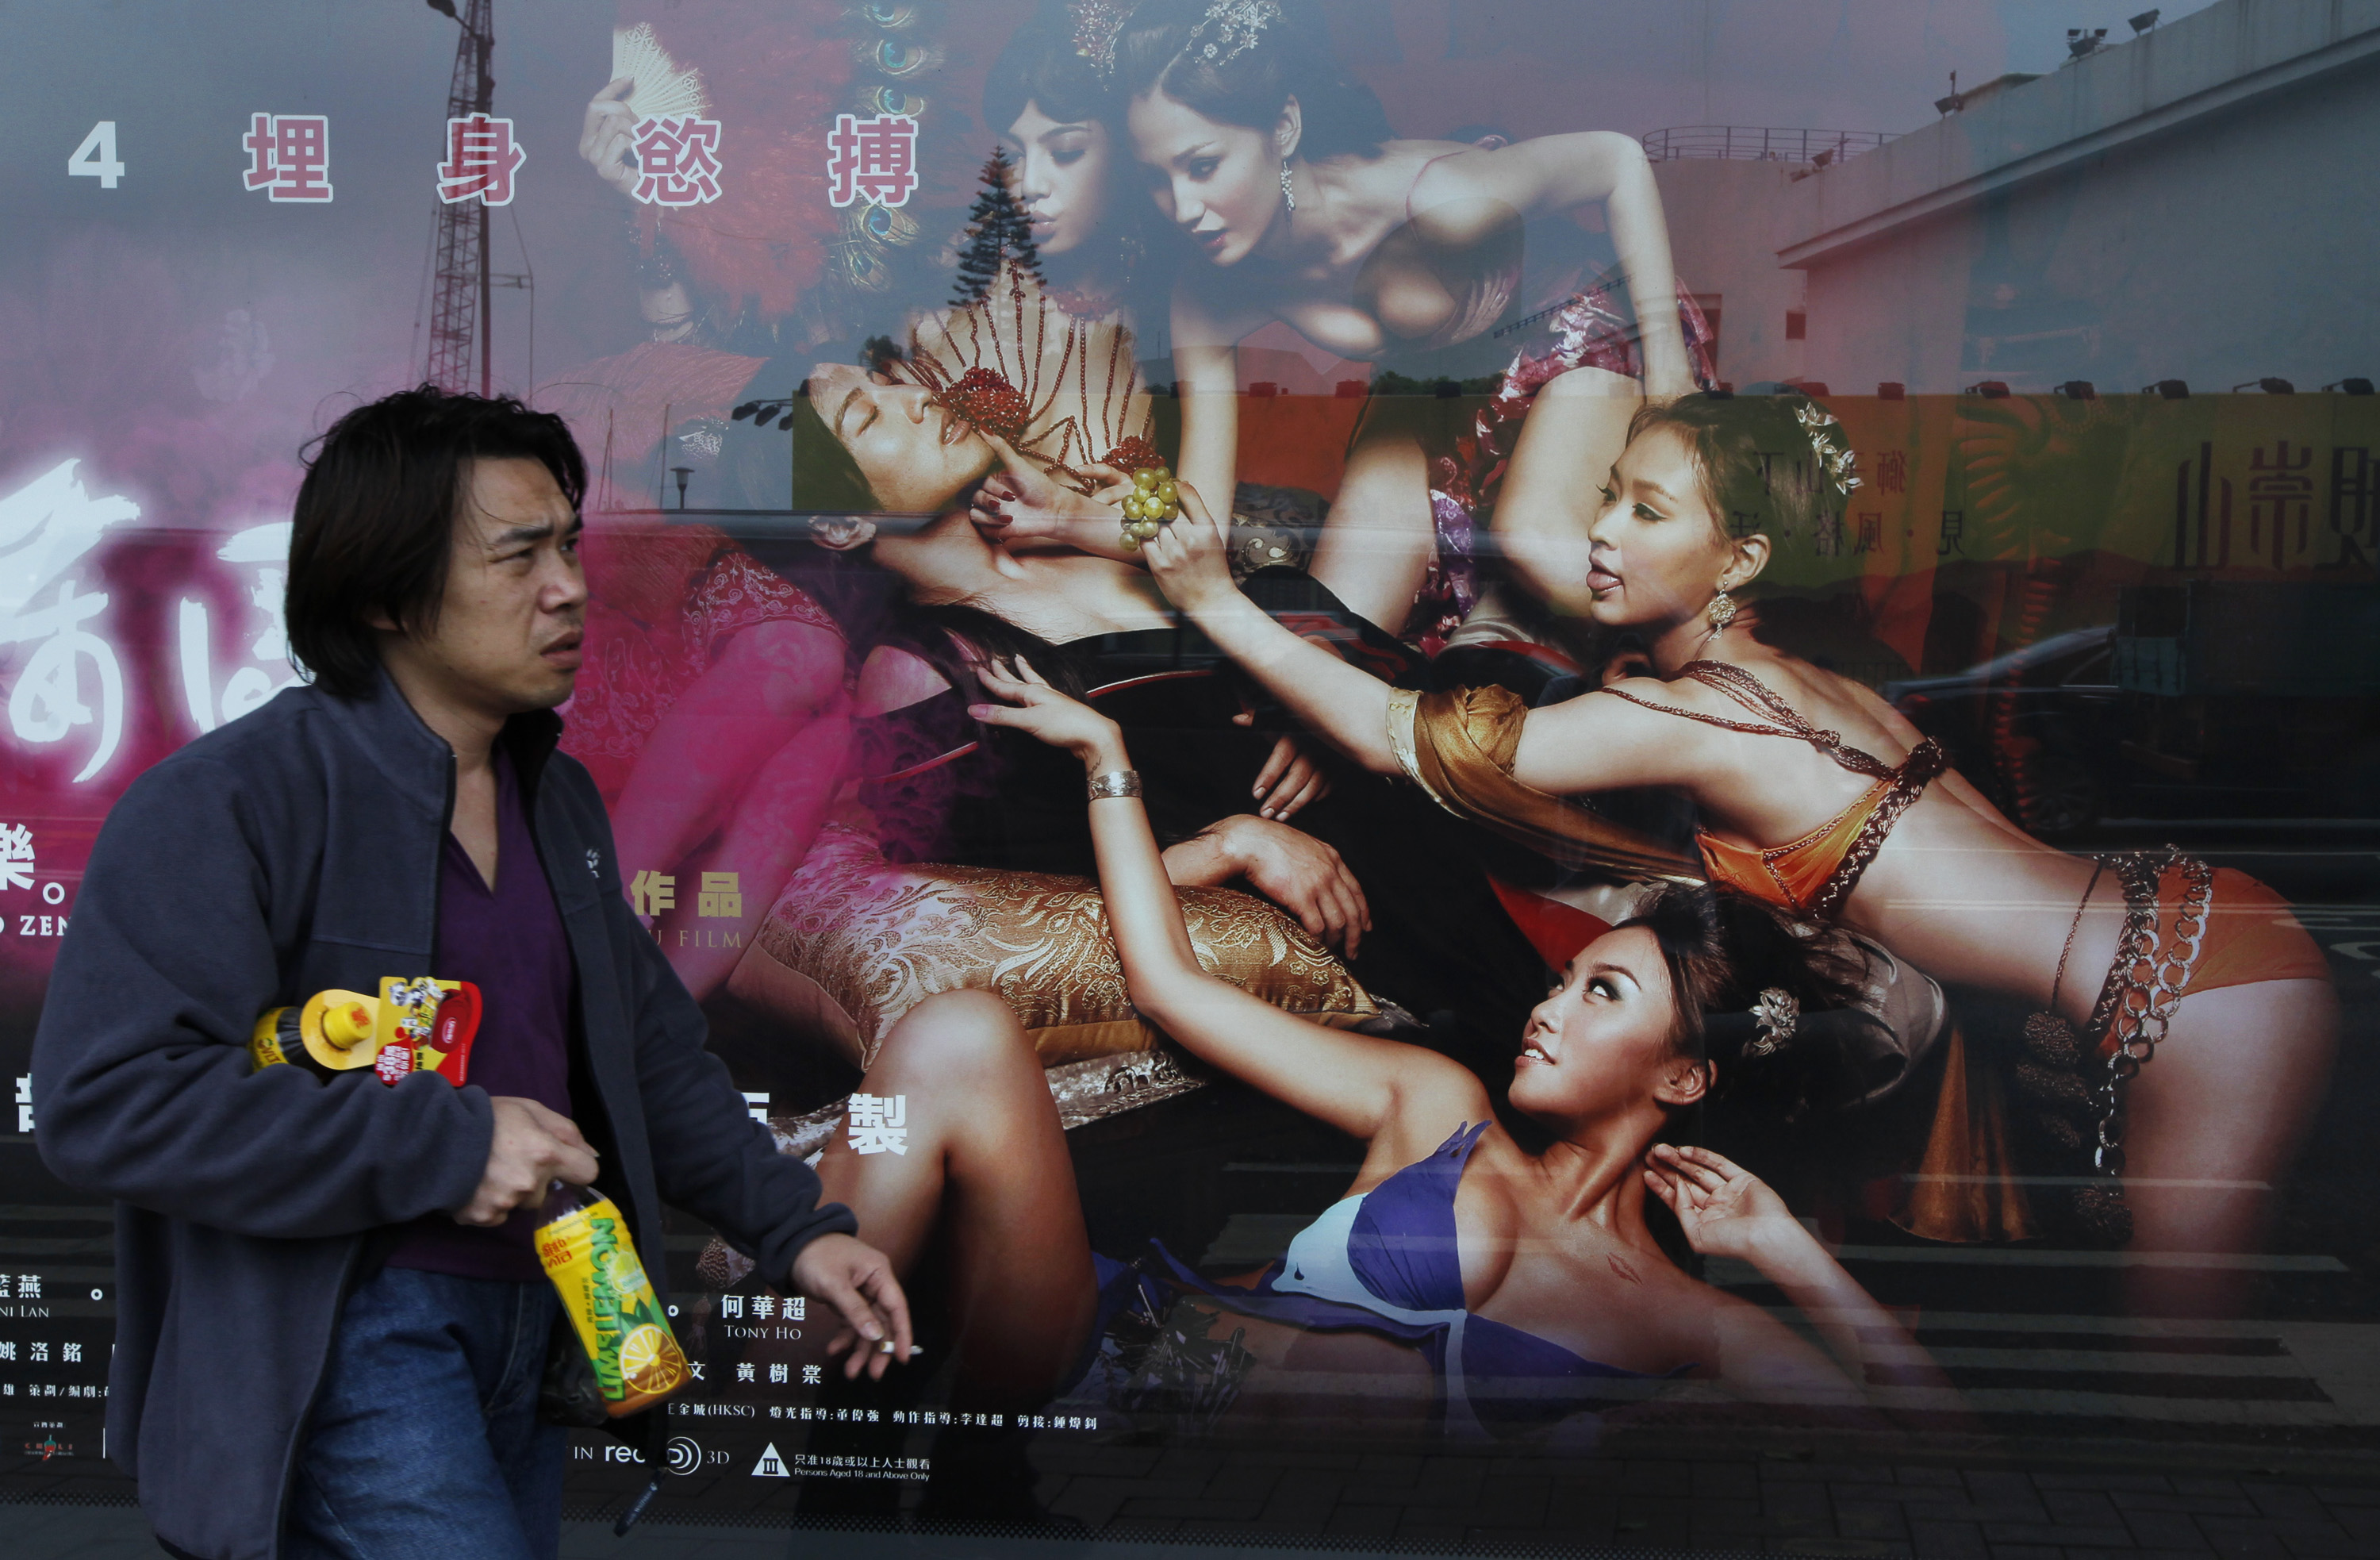 Chinese users go to Pornhub to post videos condemning Hong Kong protesters